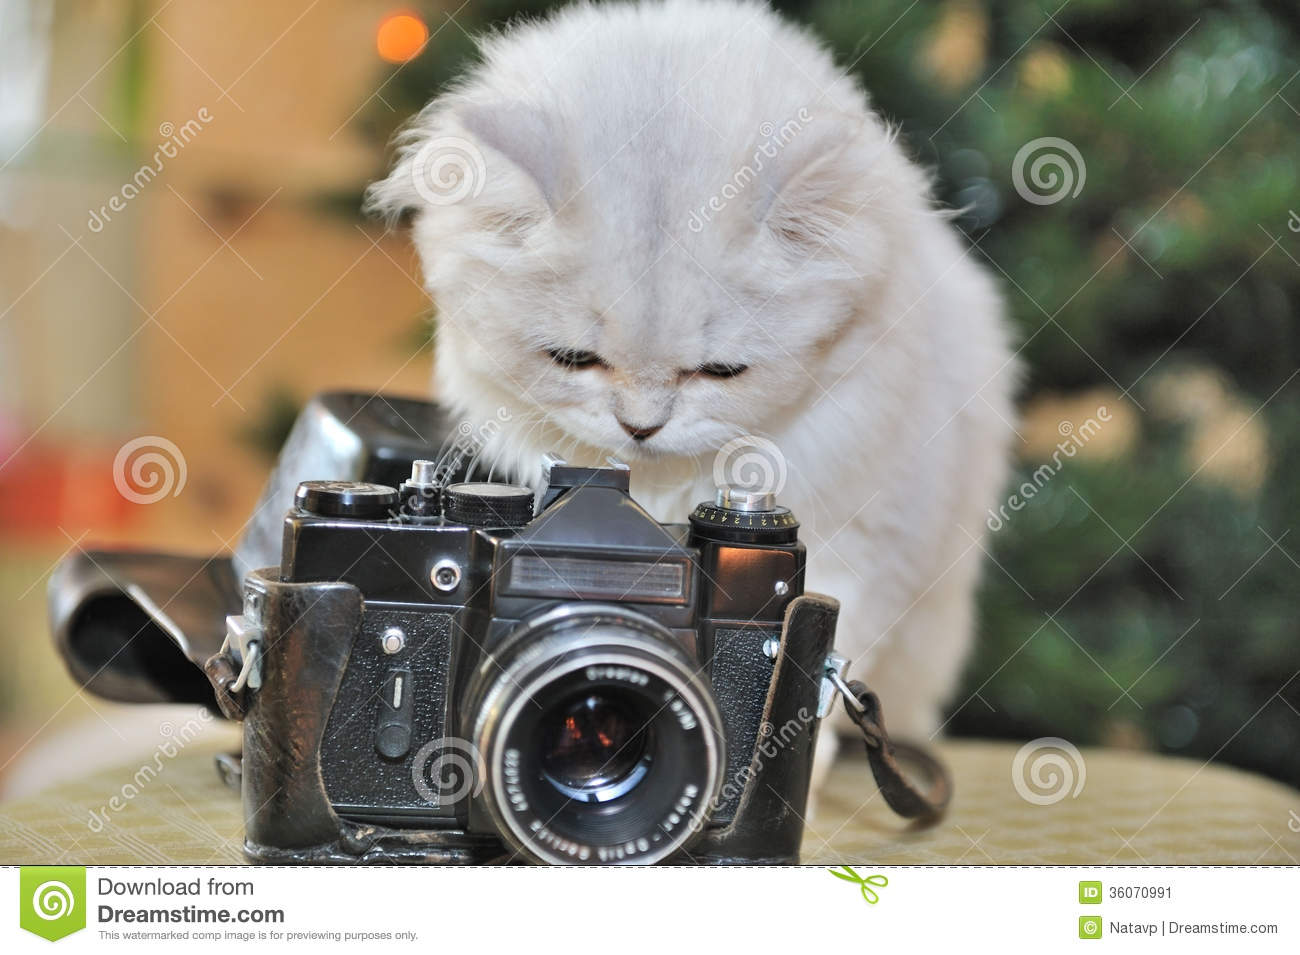 White Cat Sitting Chair Looks Into The Camera Stock Image